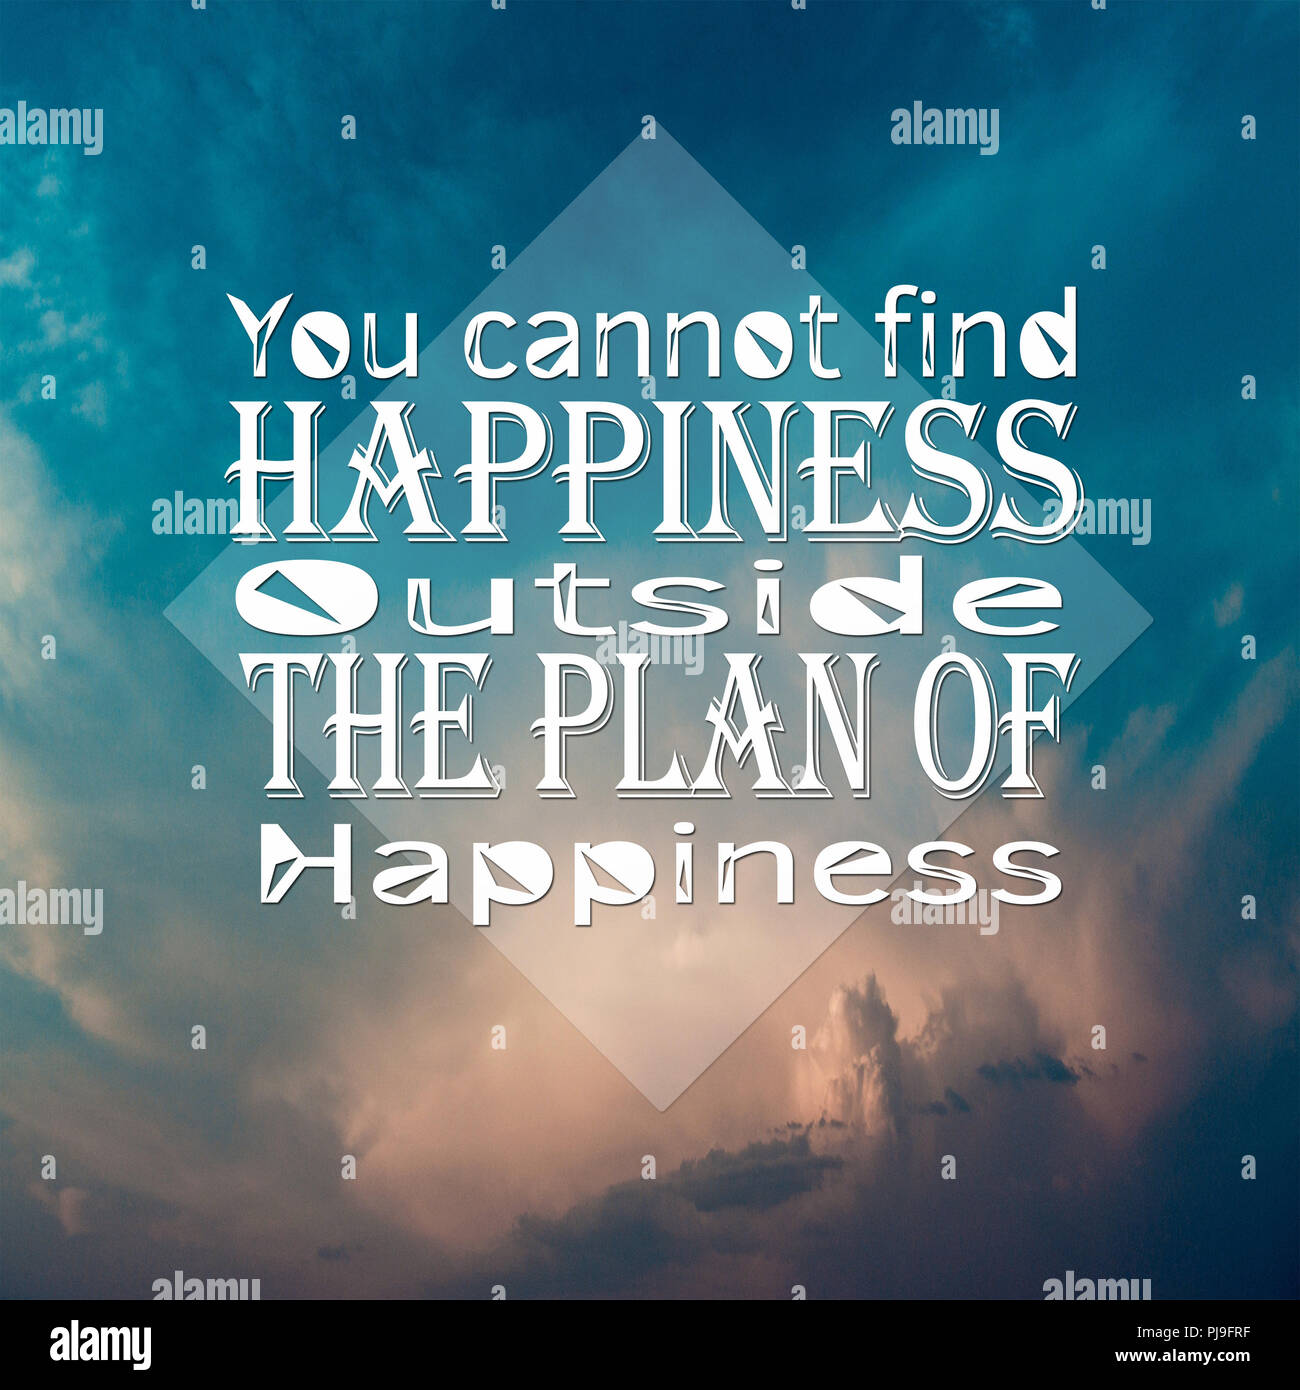 Inspirational Quotes About Happiness: Motivational Quotes Stock Photos & Motivational Quotes